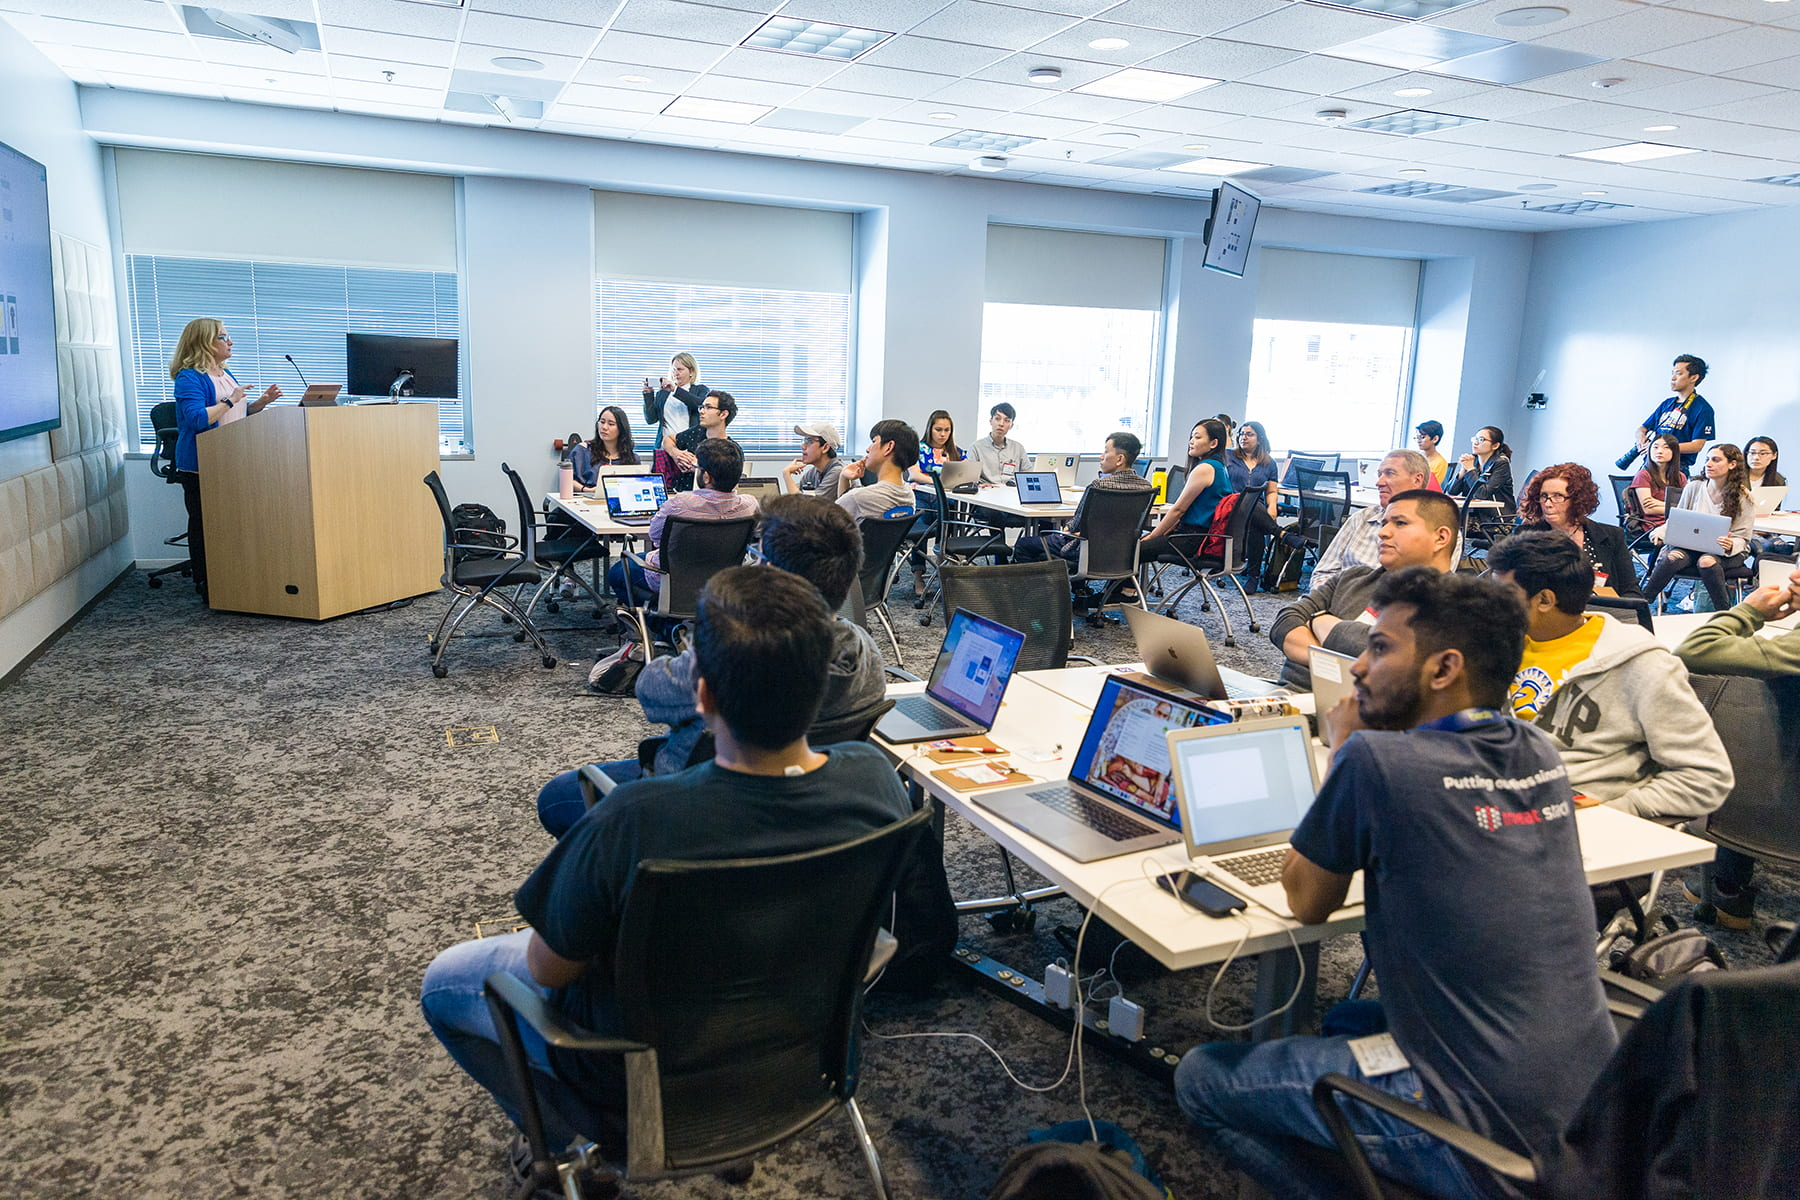 Donna Caldwell, a senior solutions consultant, leads the Adobe XD bootcamp for students who competed in the Adobe Creative Jam April 18, 2019. Photo by Robert C. Bain